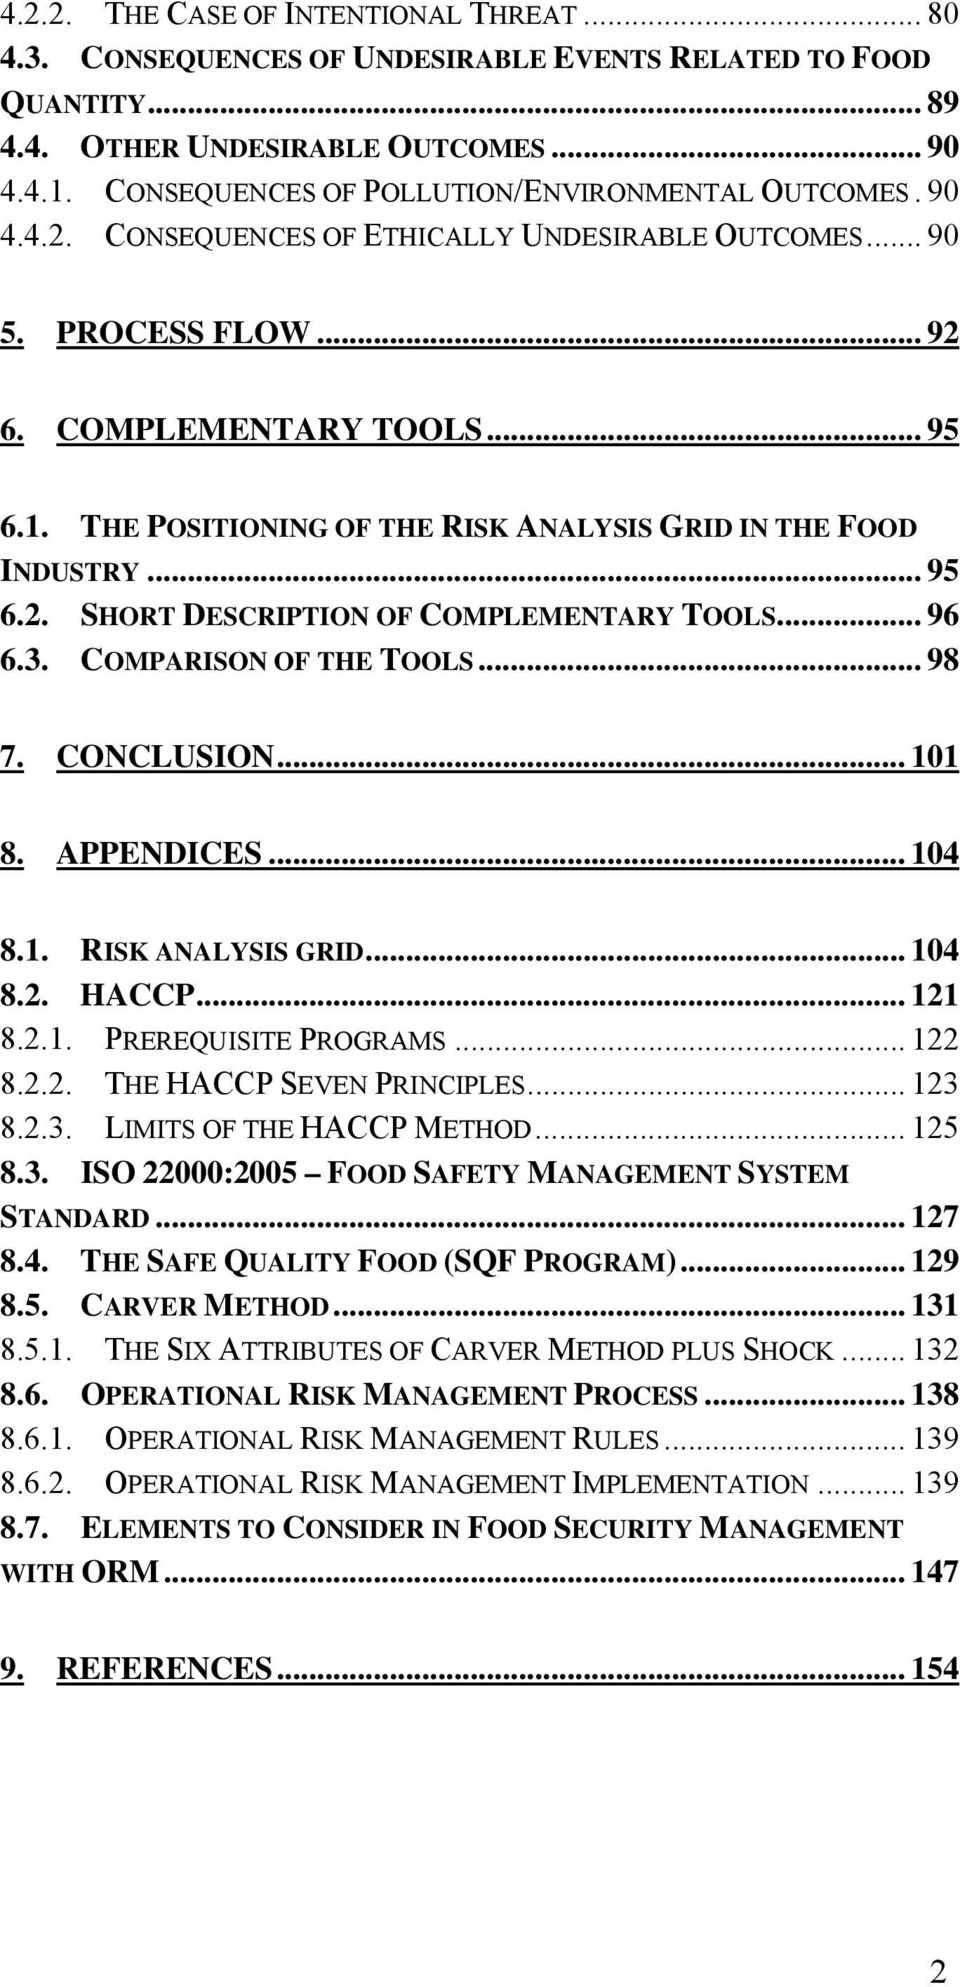 THE POSITIONING OF THE RISK ANALYSIS GRID IN THE FOOD INDUSTRY... 95 6.2. SHORT DESCRIPTION OF COMPLEMENTARY TOOLS... 96 6.3. COMPARISON OF THE TOOLS... 98 7. CONCLUSION... 101 8. APPENDICES... 104 8.